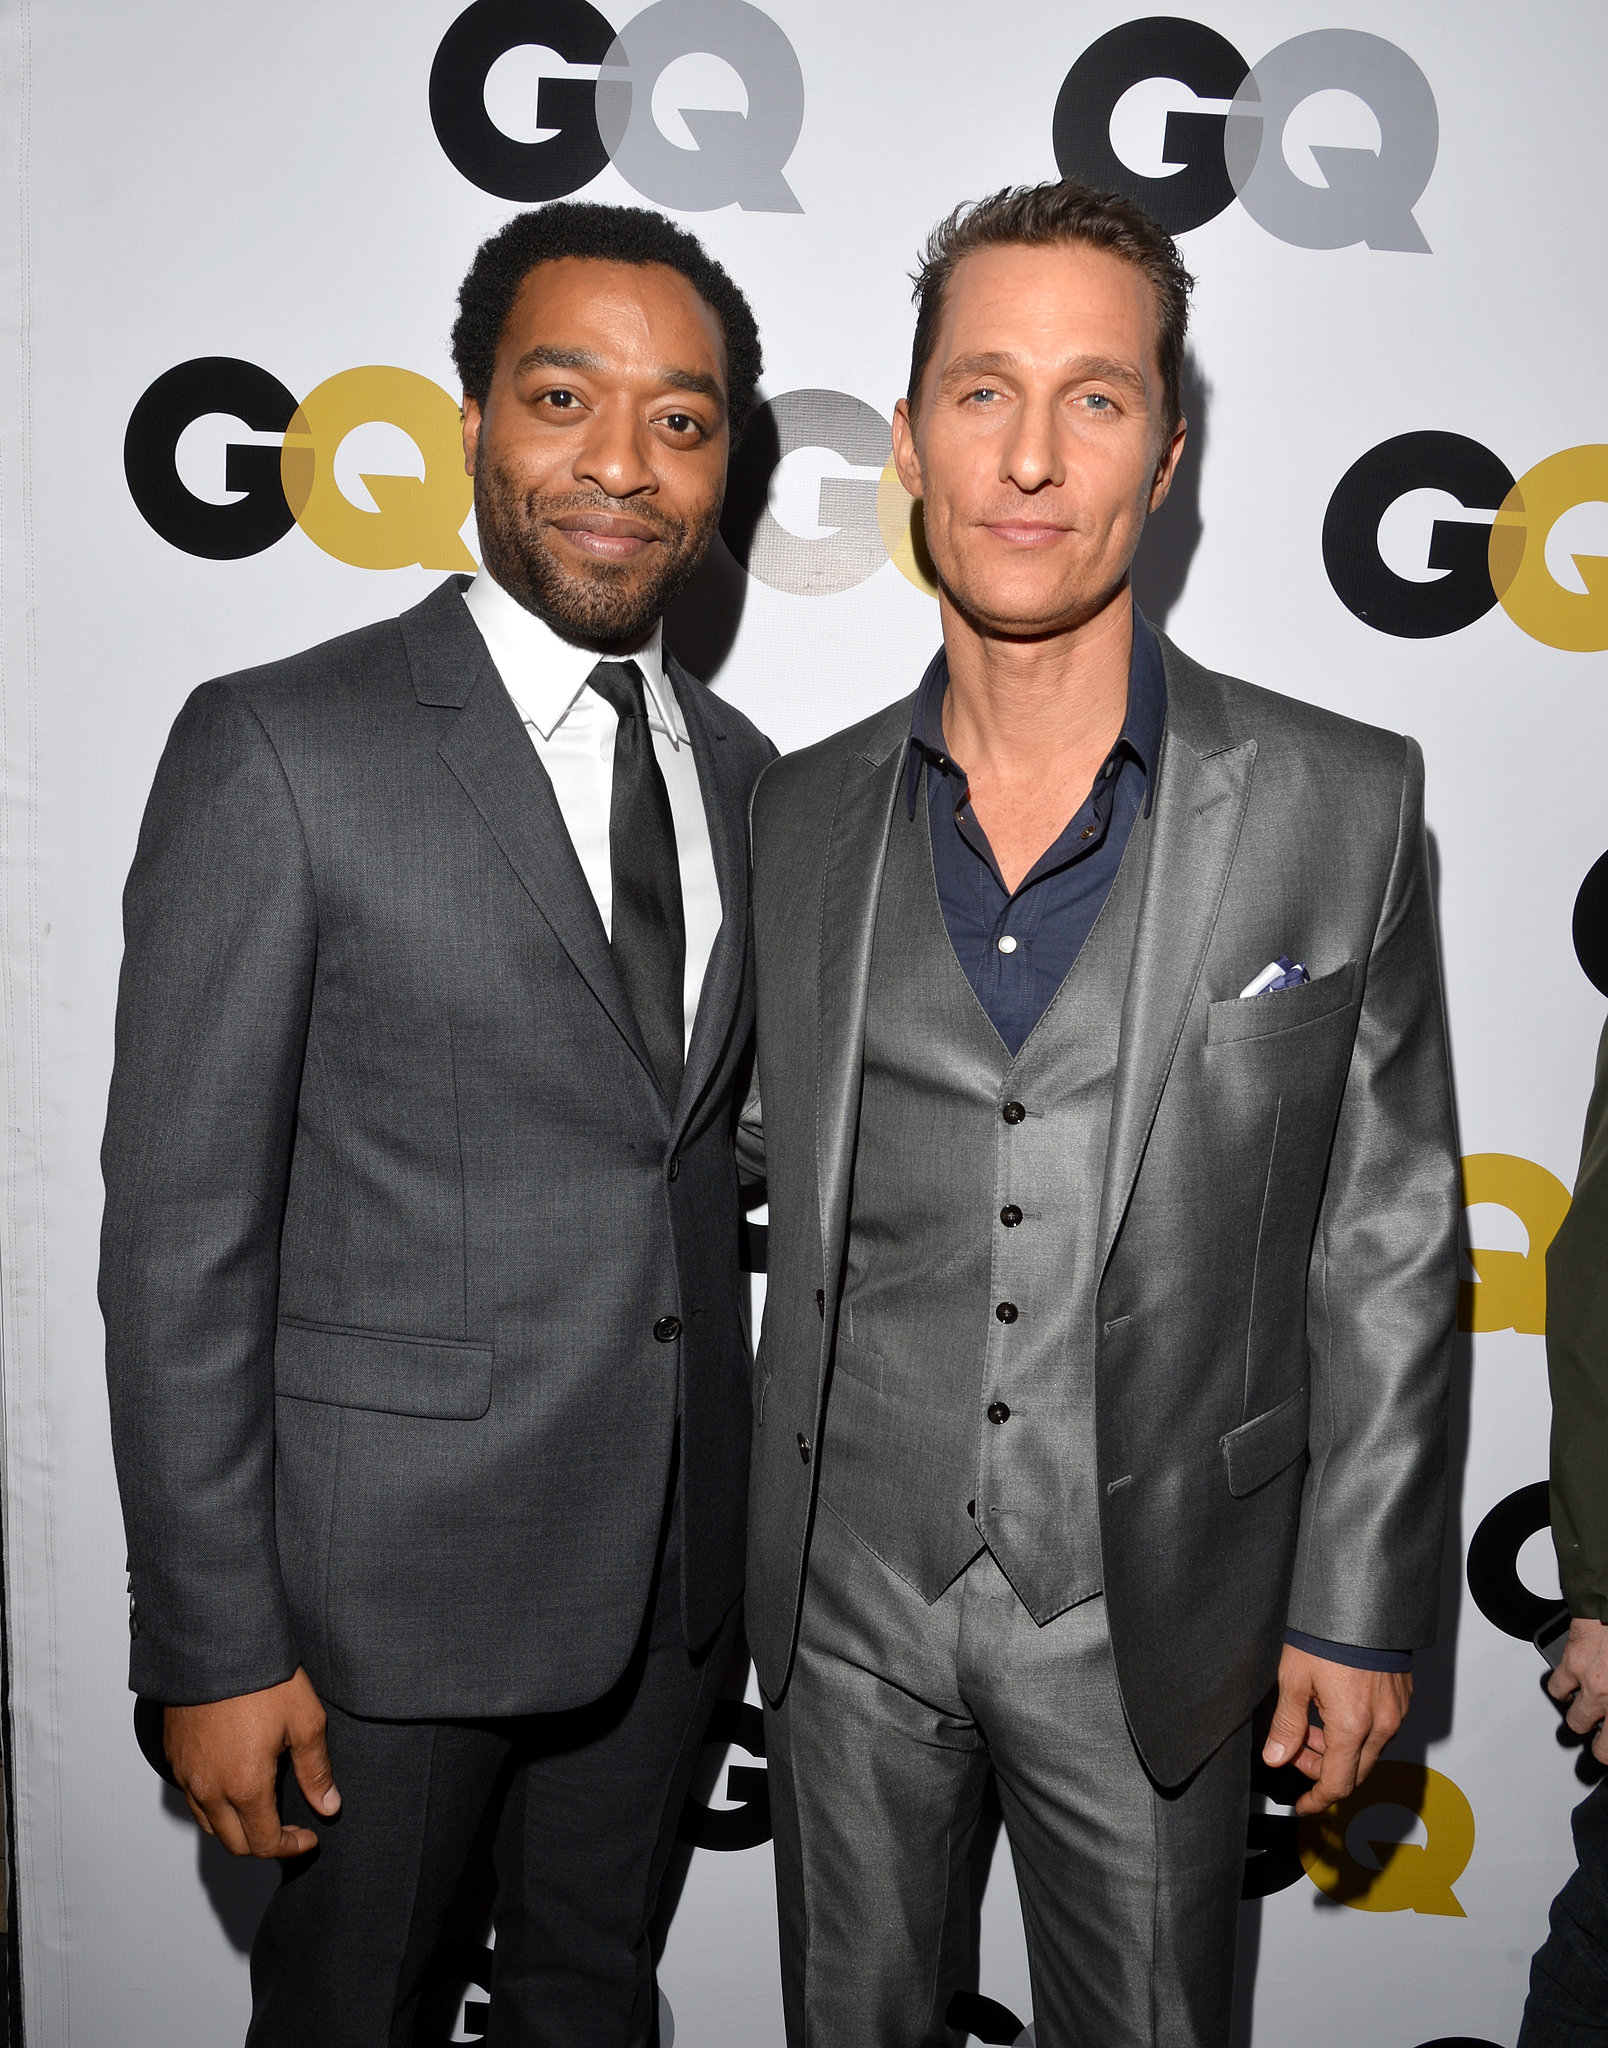 Chiwetel Ejiofor and Matthew McConaughey posed together at the GQ party.